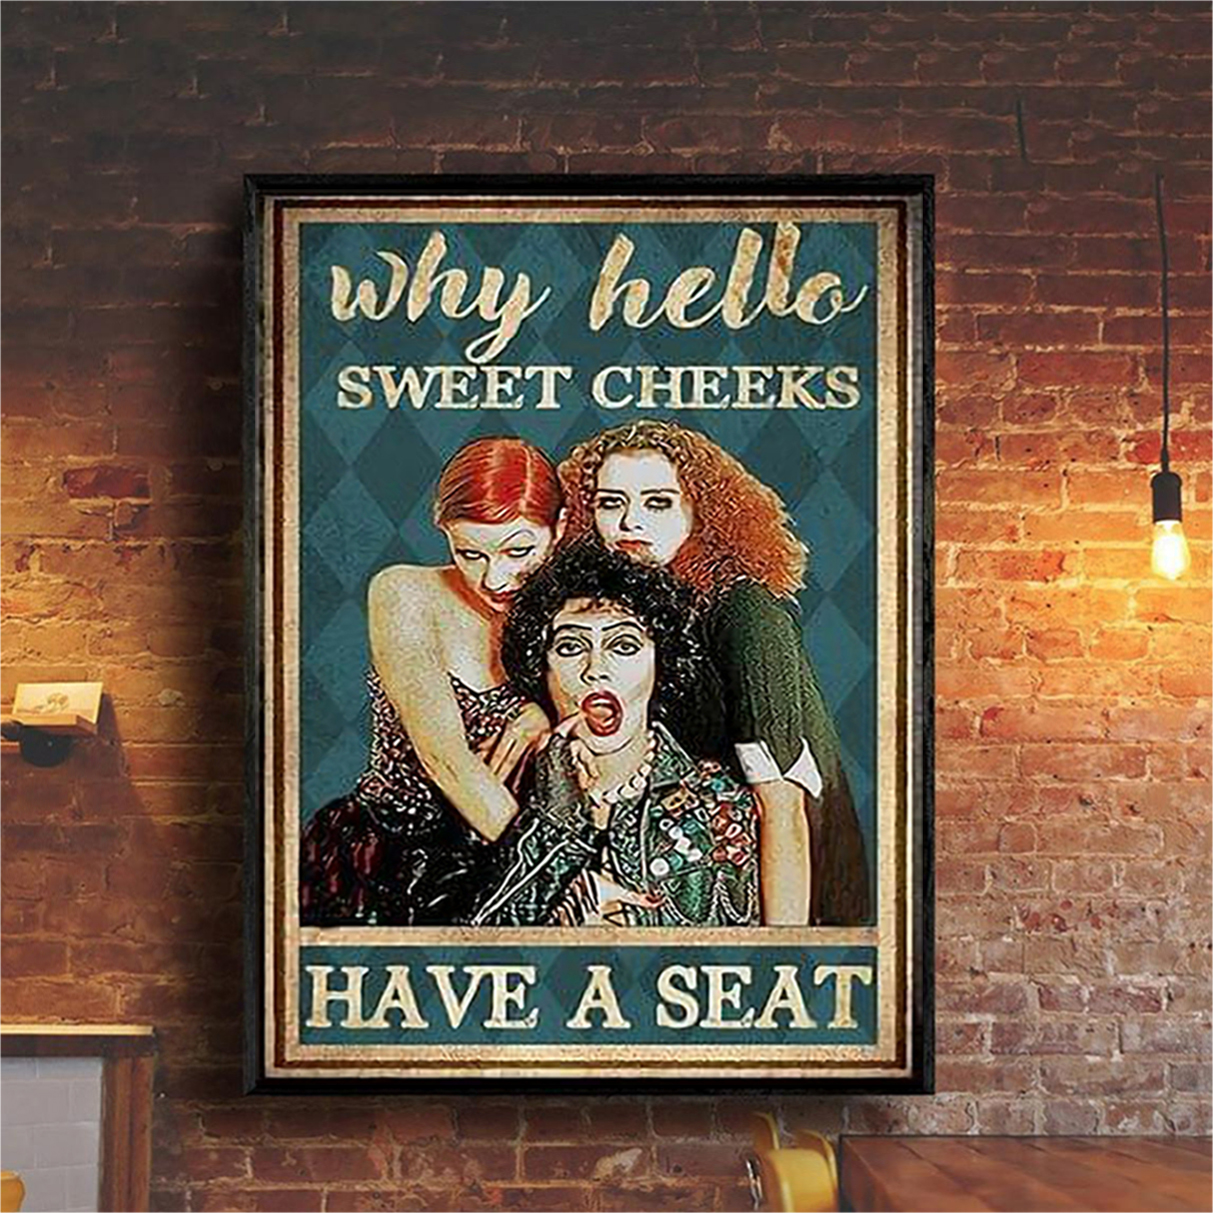 Hocus pocus why hello sweet cheeks have a seat poster A1